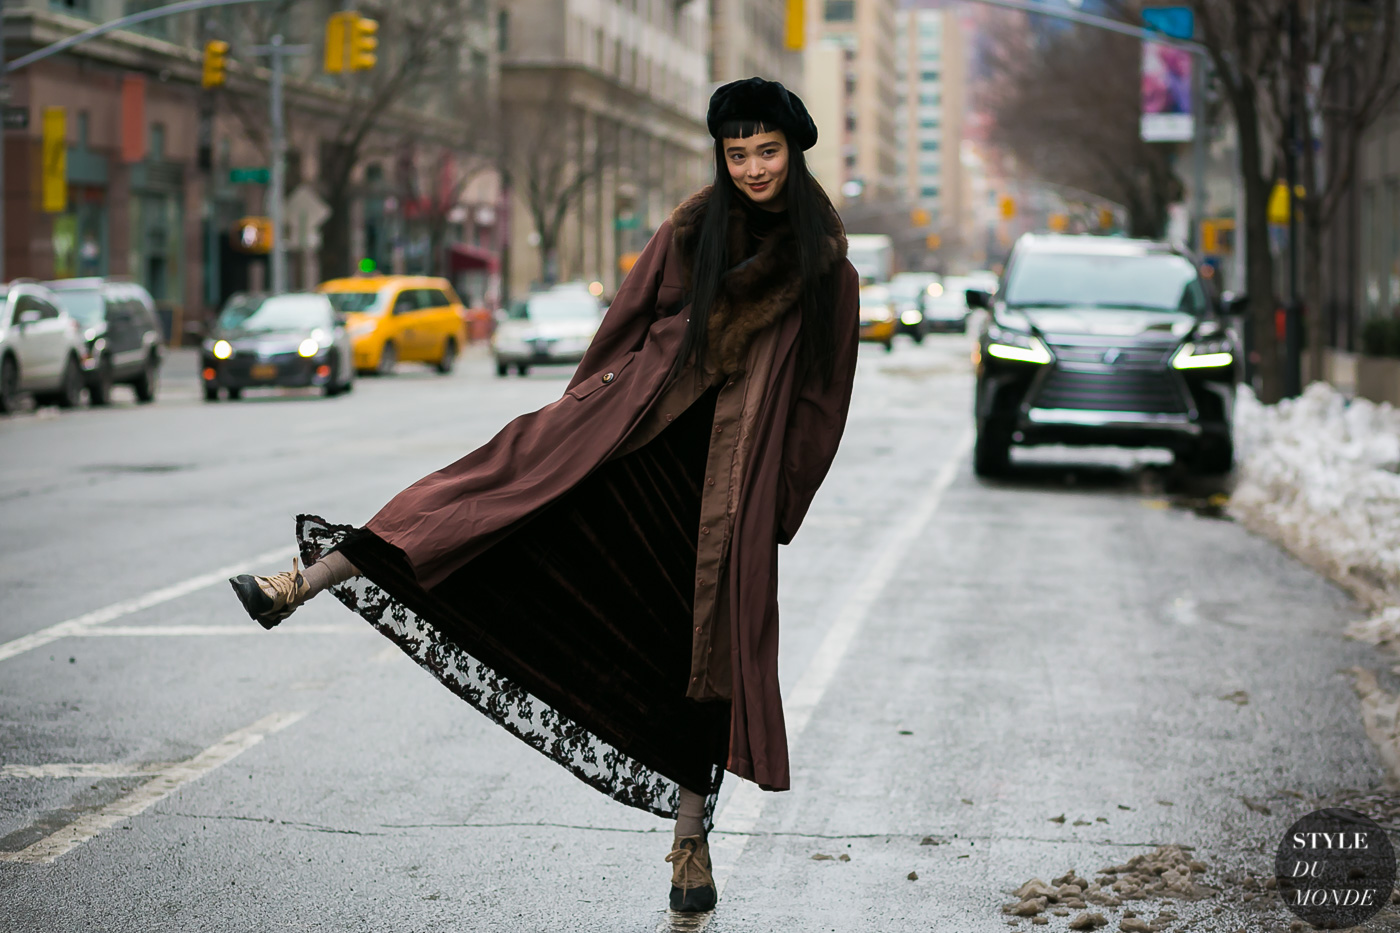 Yuka Mannami by STYLEDUMONDE Street Style Fashion Photography